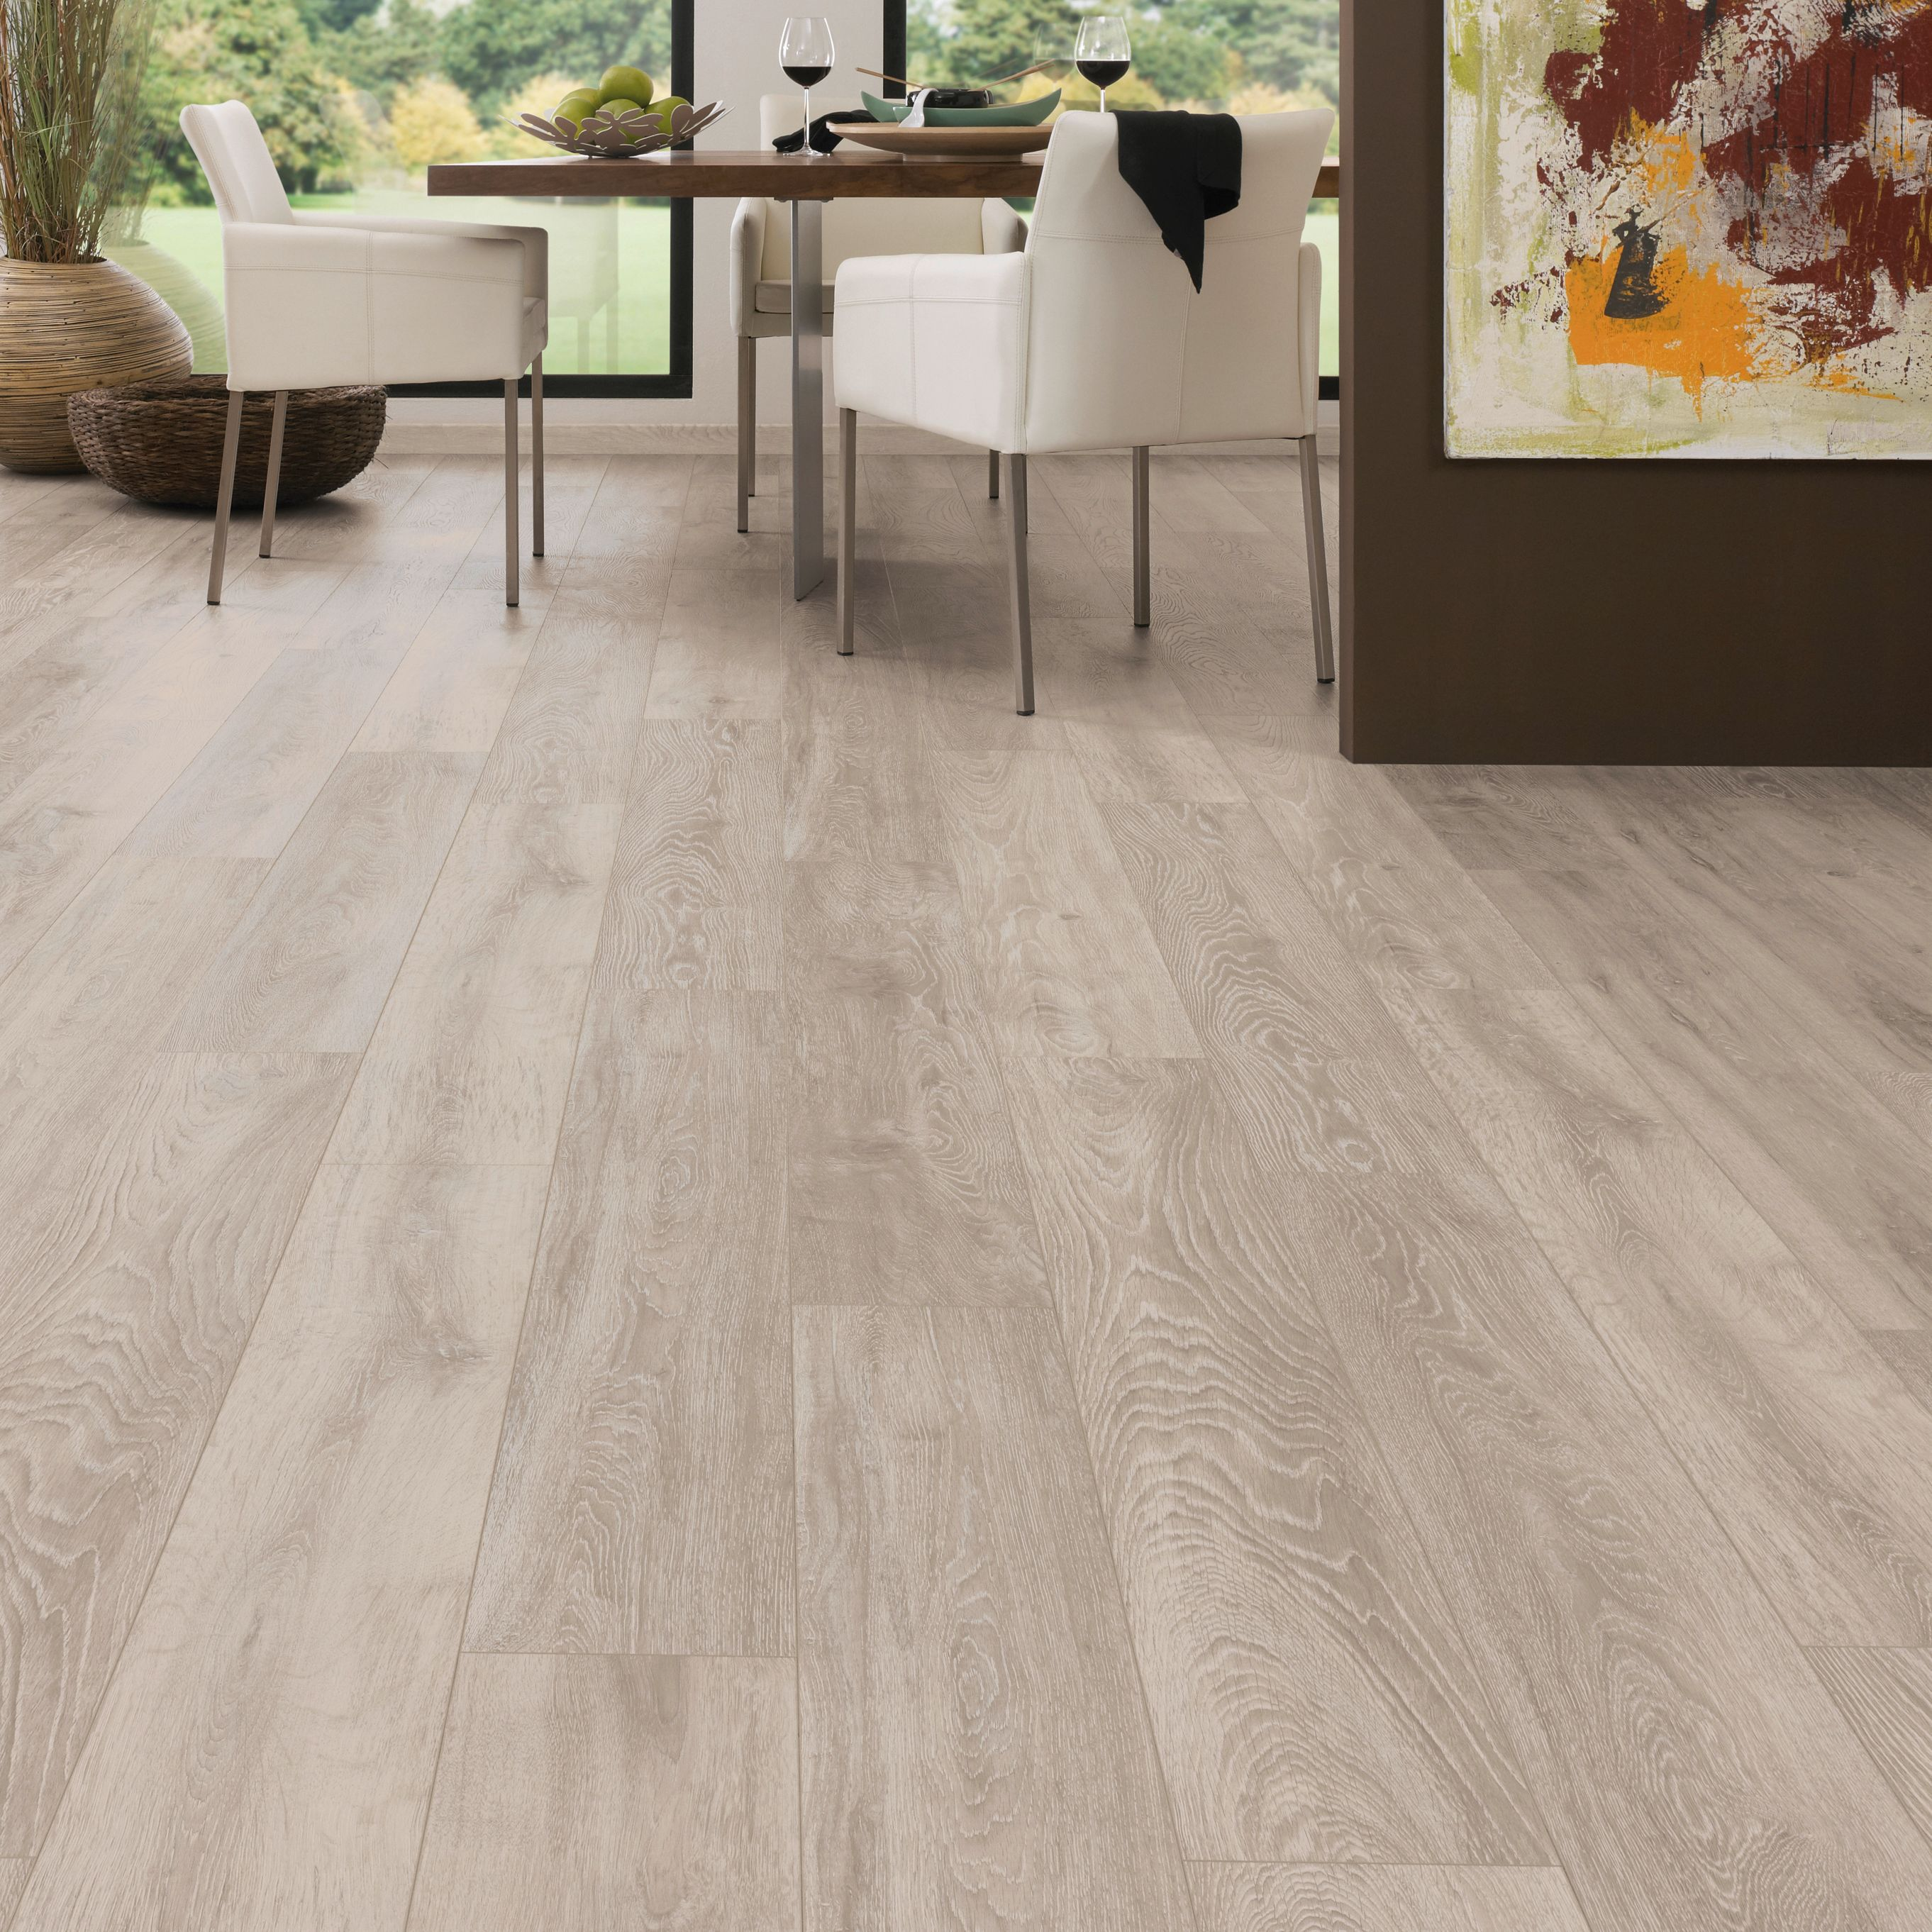 Amadeo Boulder Embossed Laminate Flooring 2.22 m Pack | Departments | DIY  at B&Q